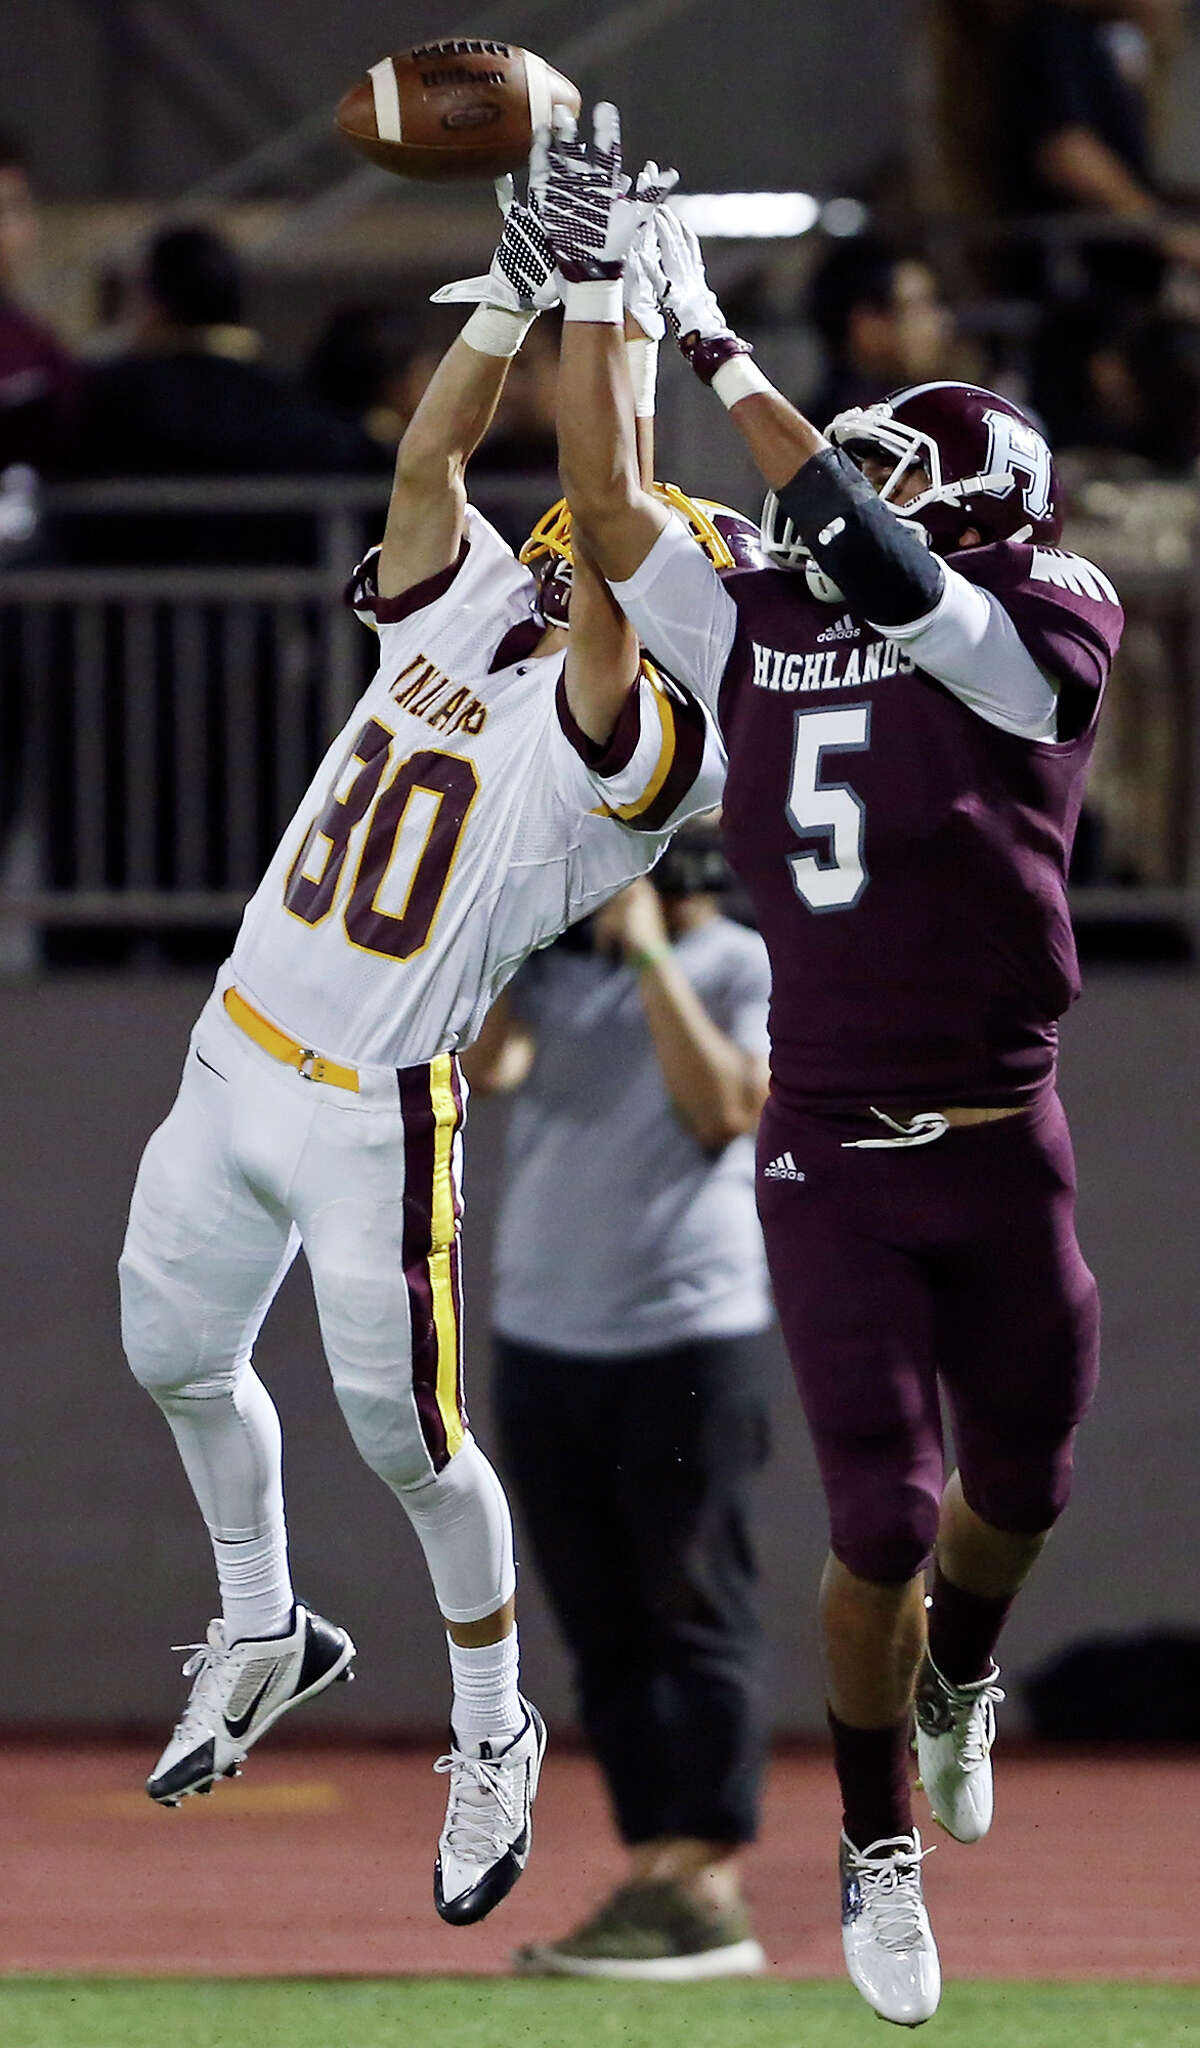 Harlandale's Rene Palomino goes up for a pass as he is defended by Highlands' Thomas Salame during second half action Friday Sept. 24, 2015 at Alamo Stadium. The pass was incomplete. Highlands won 14-7.